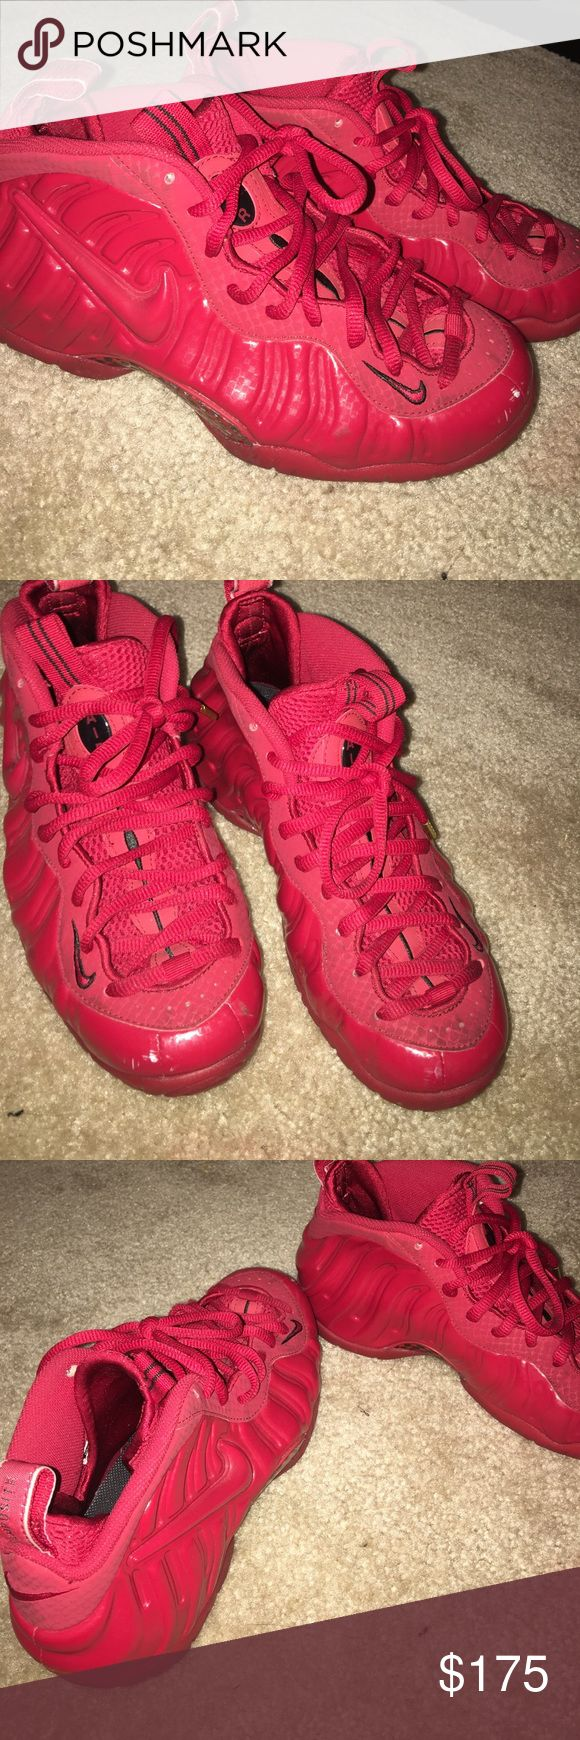 All Red Foamposites 7/10 little scratch in front. Worn 5 times at most. Nike Shoes Sneakers